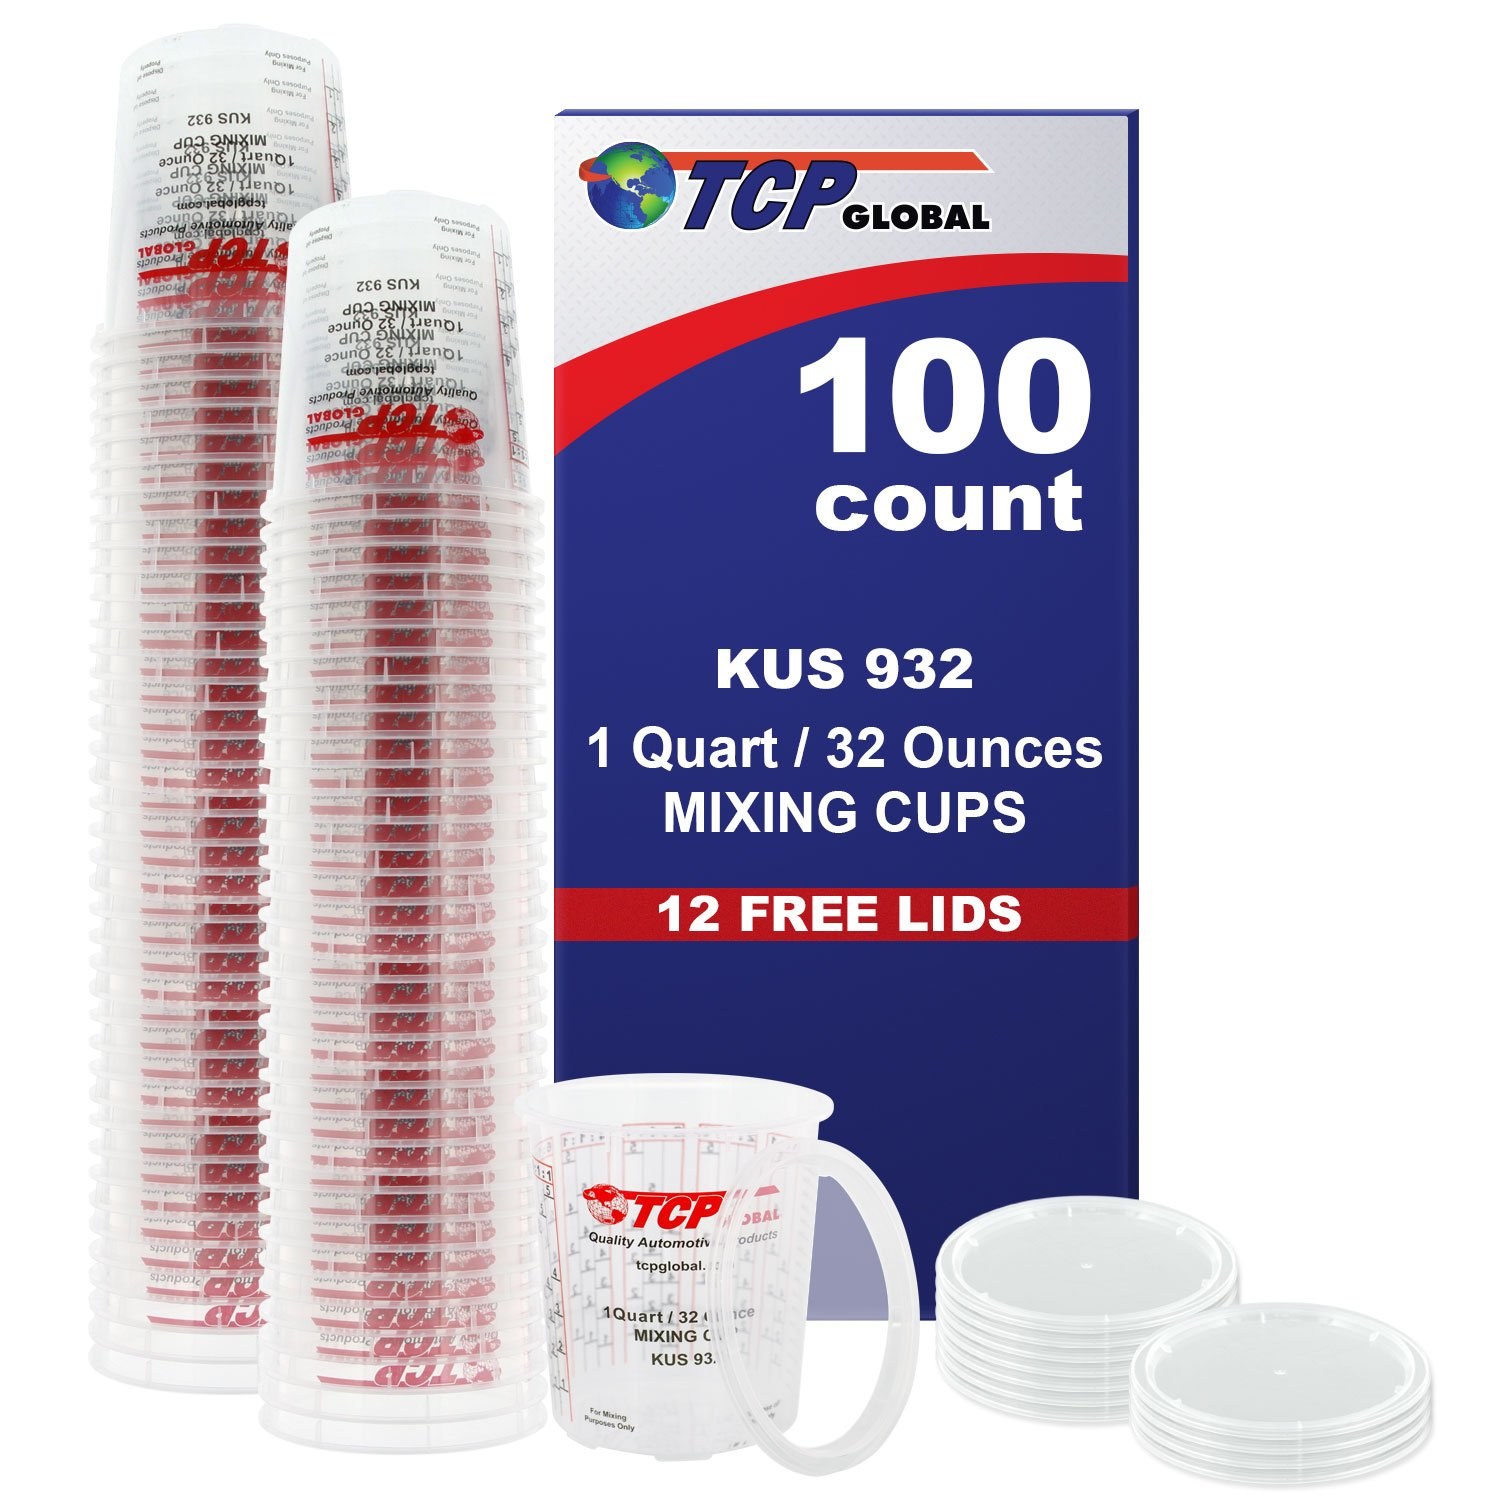 (Full Case of 100 each - 32 Ounce PAINT MIXING CUPS) by Custom Shop - Cups have calibrated mixing ratios on side of cup BOX OF 100 Cups